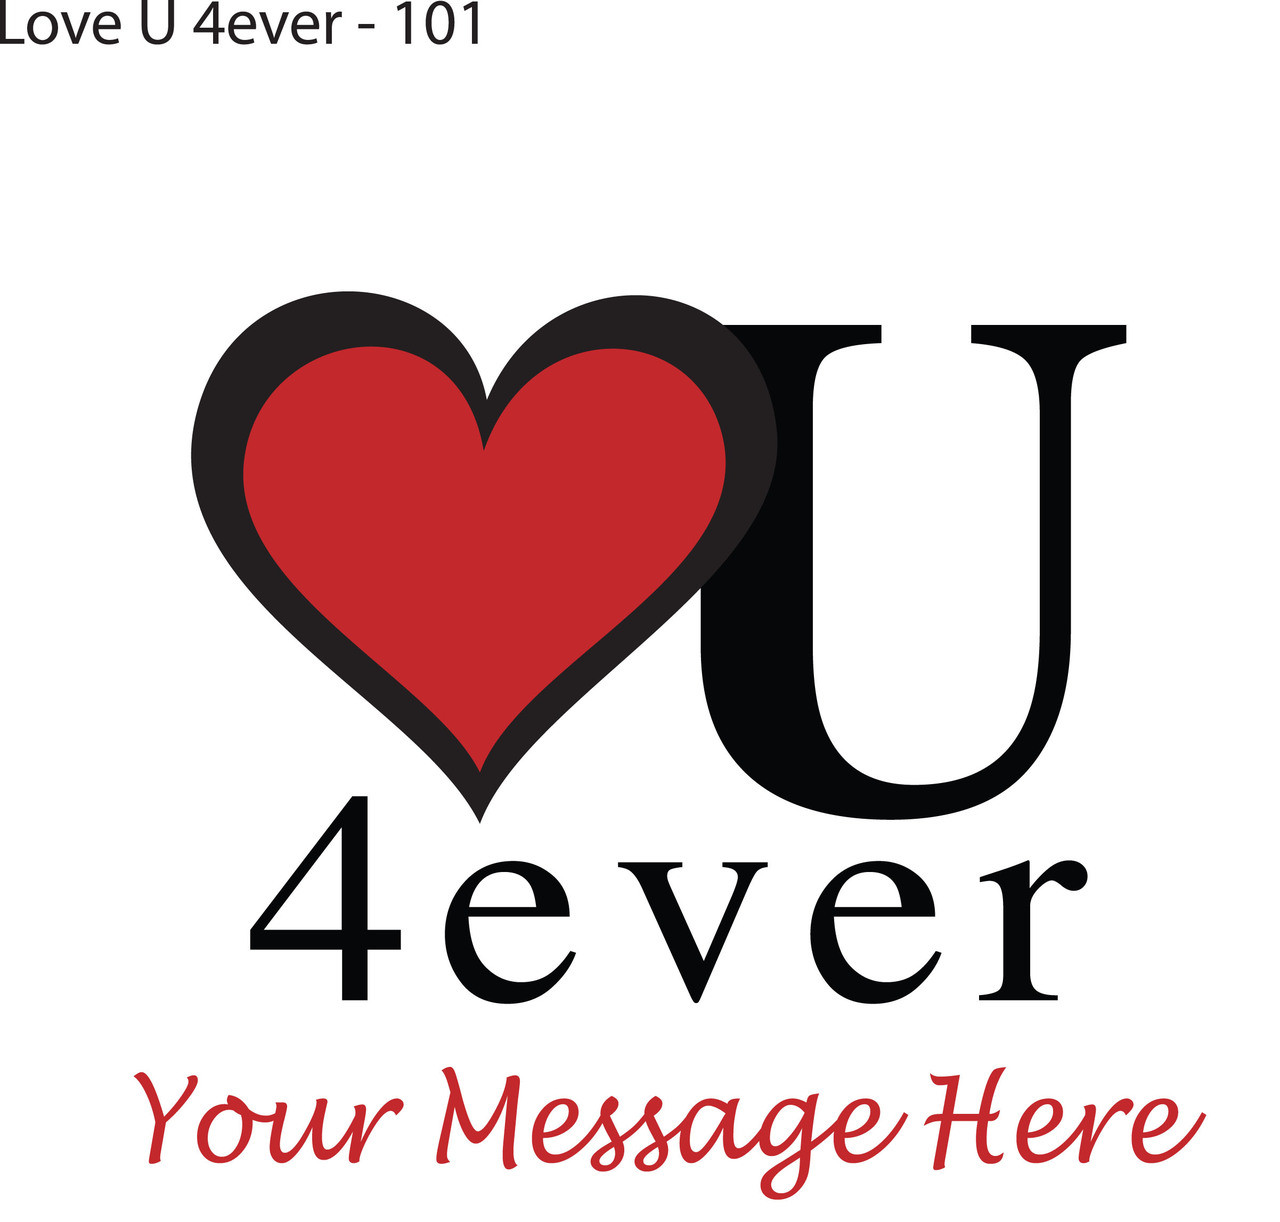 Personalized Love U 4ever red heart Valentine's Day Giant Teddy Bear Shirt